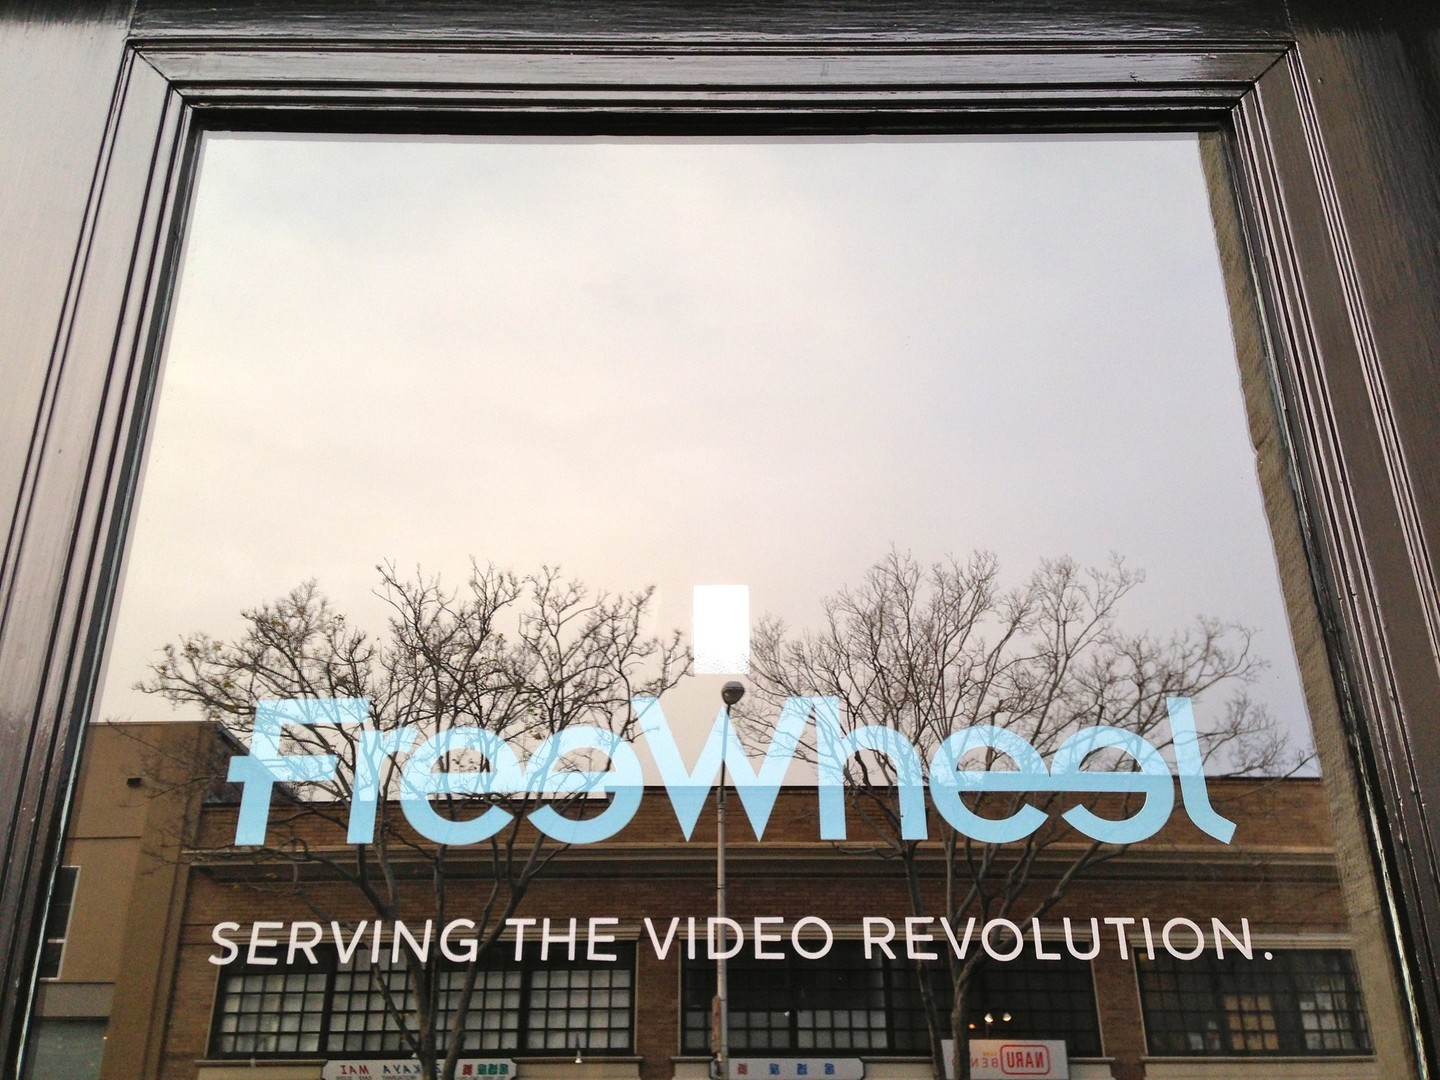 Many of downtown San Mateo's older office buildings now house tech start ups and restaurants. FreeWheel is in a 1925 Greek Revival that used to be a bank. In the window's reflection you can see another 1925 building across the street that's home to several Japanese restaurants.